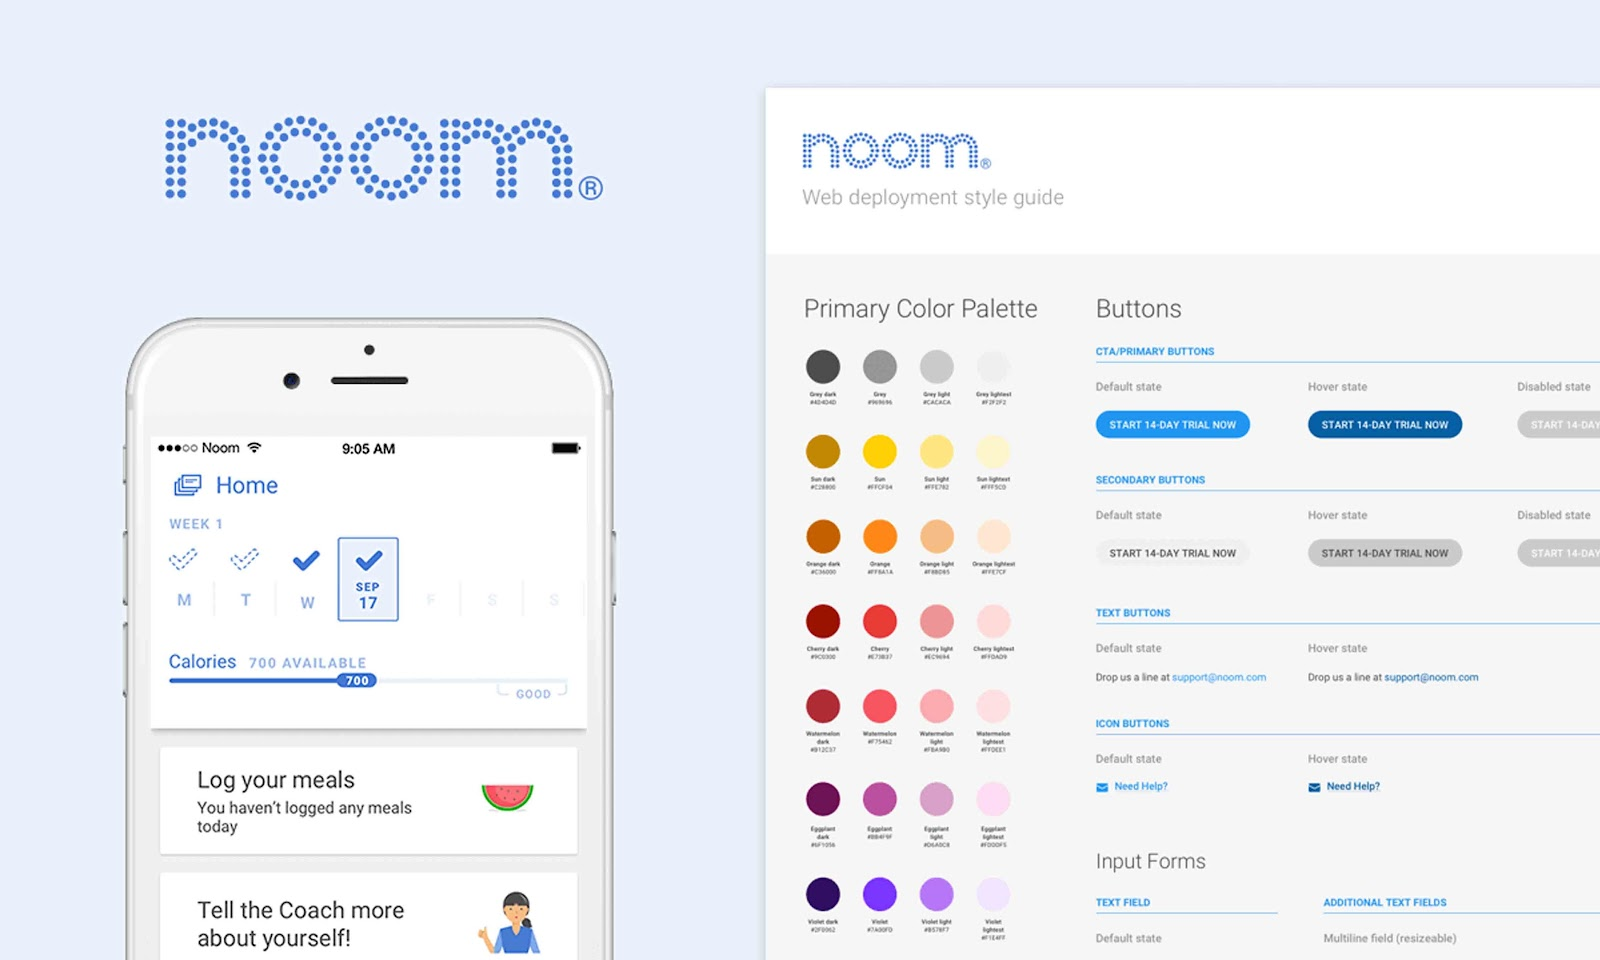 Noom Review - Can You Really Lose Weight Using The Noom Diet Plans?